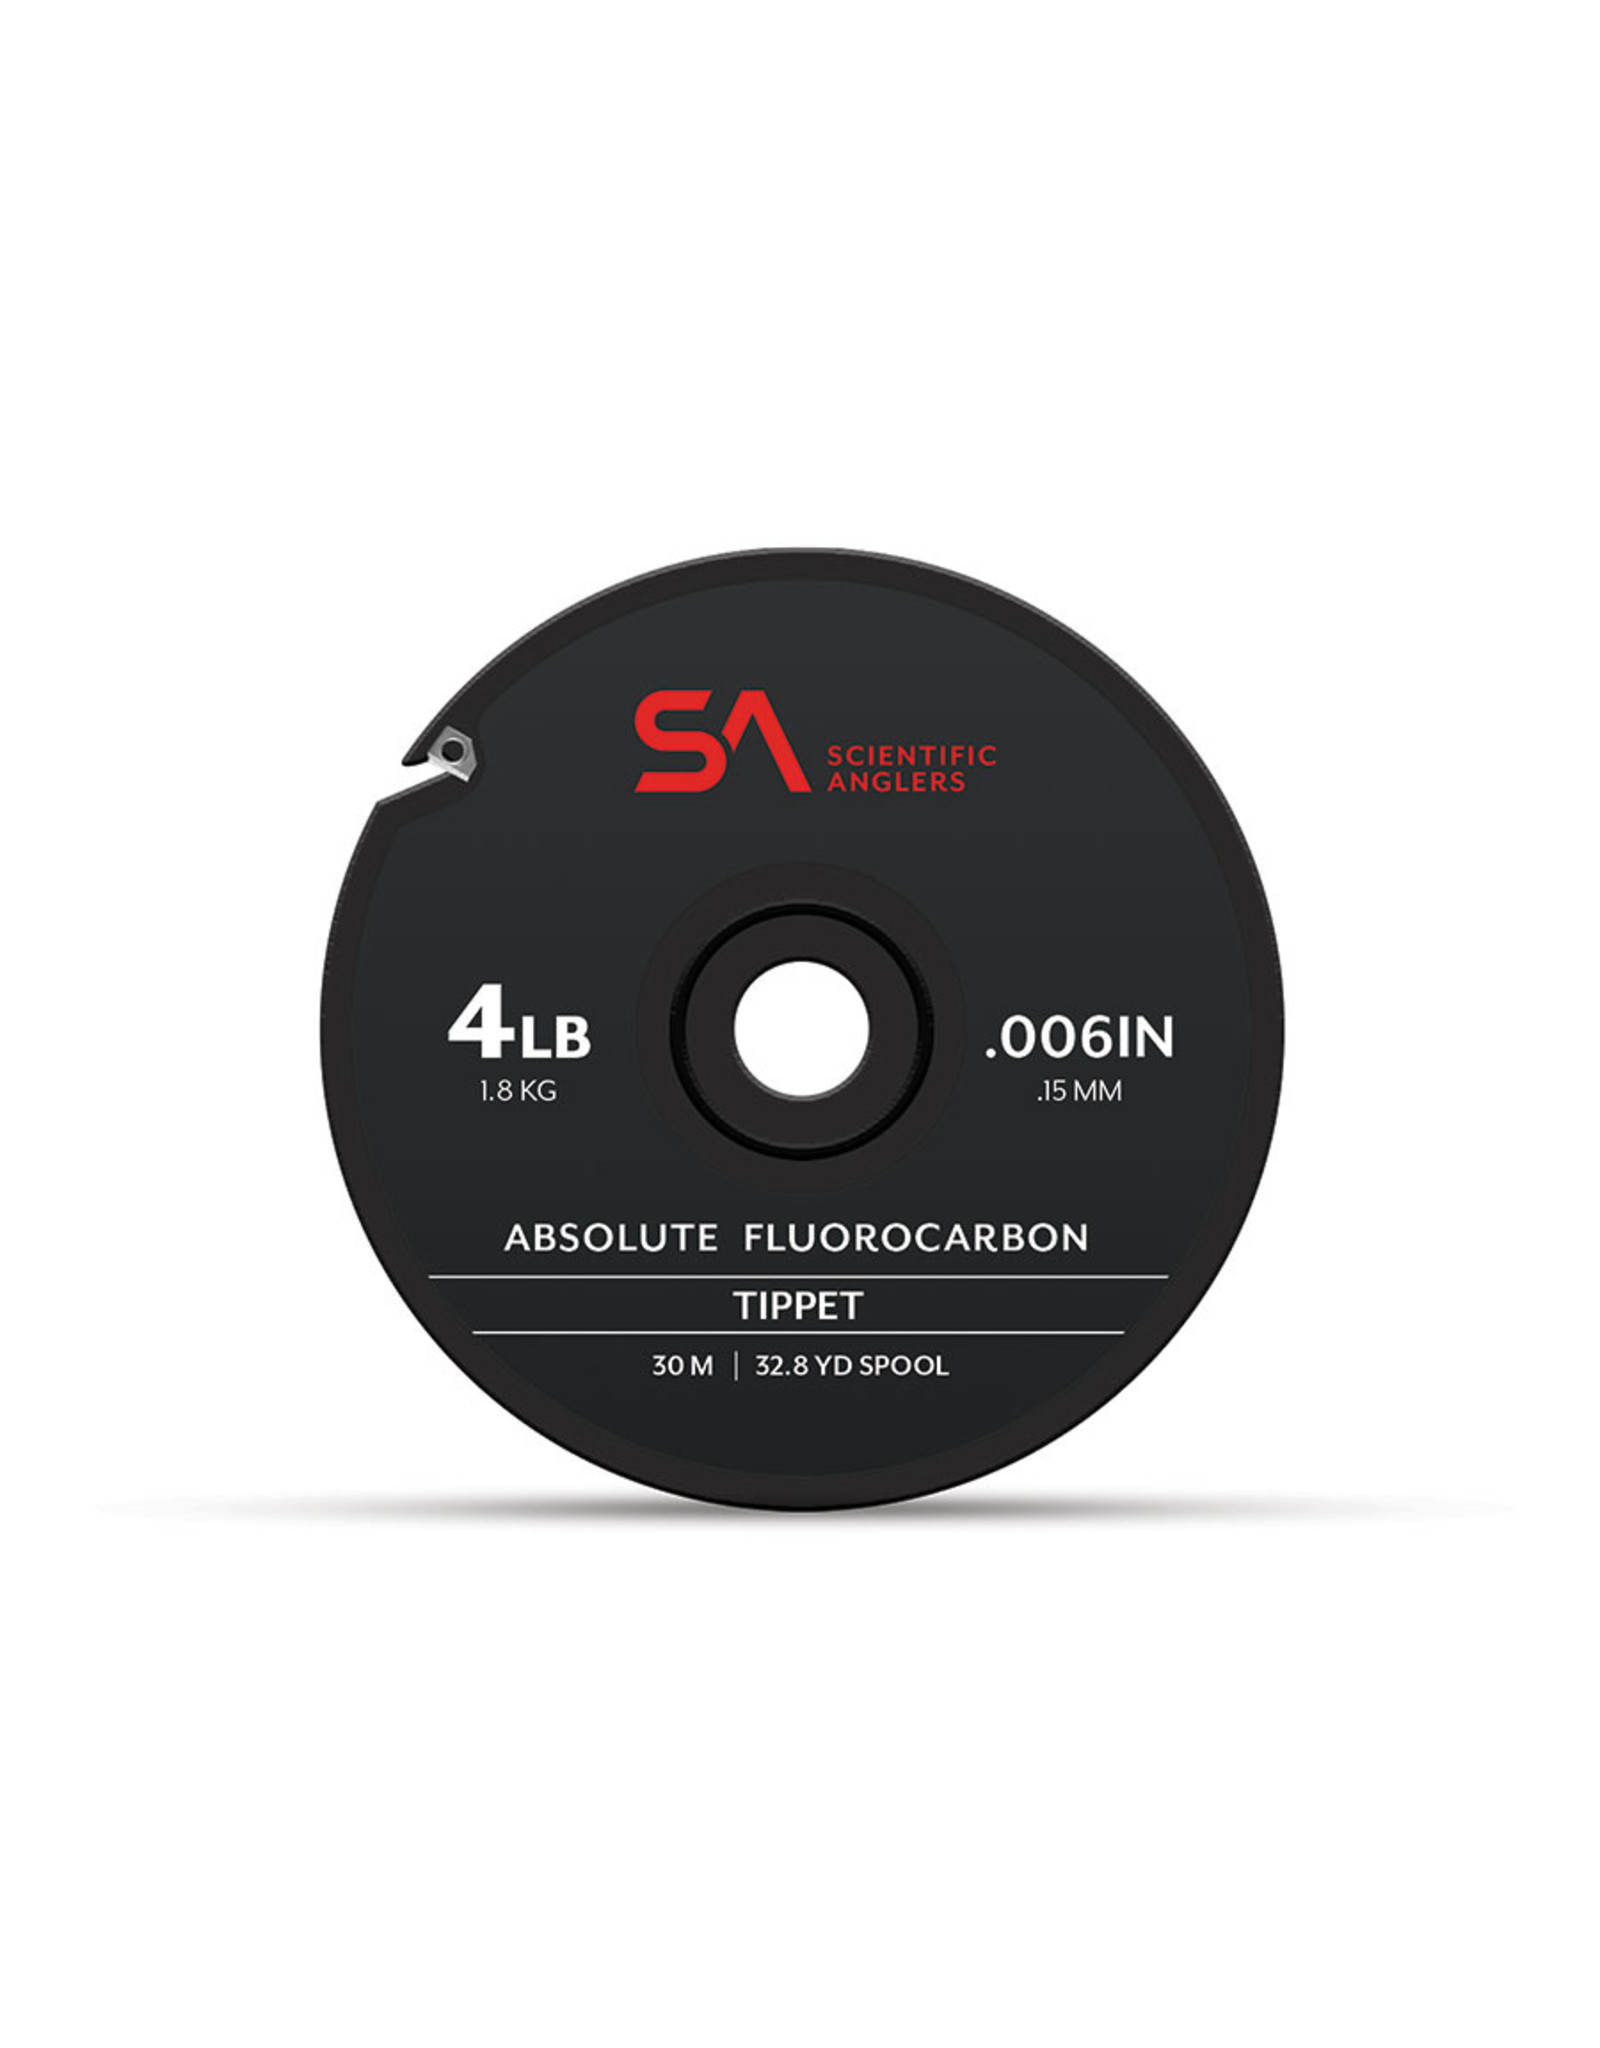 SCIENTIFIC ANGLERS Absolute Fluorocarbon Tippet 30M